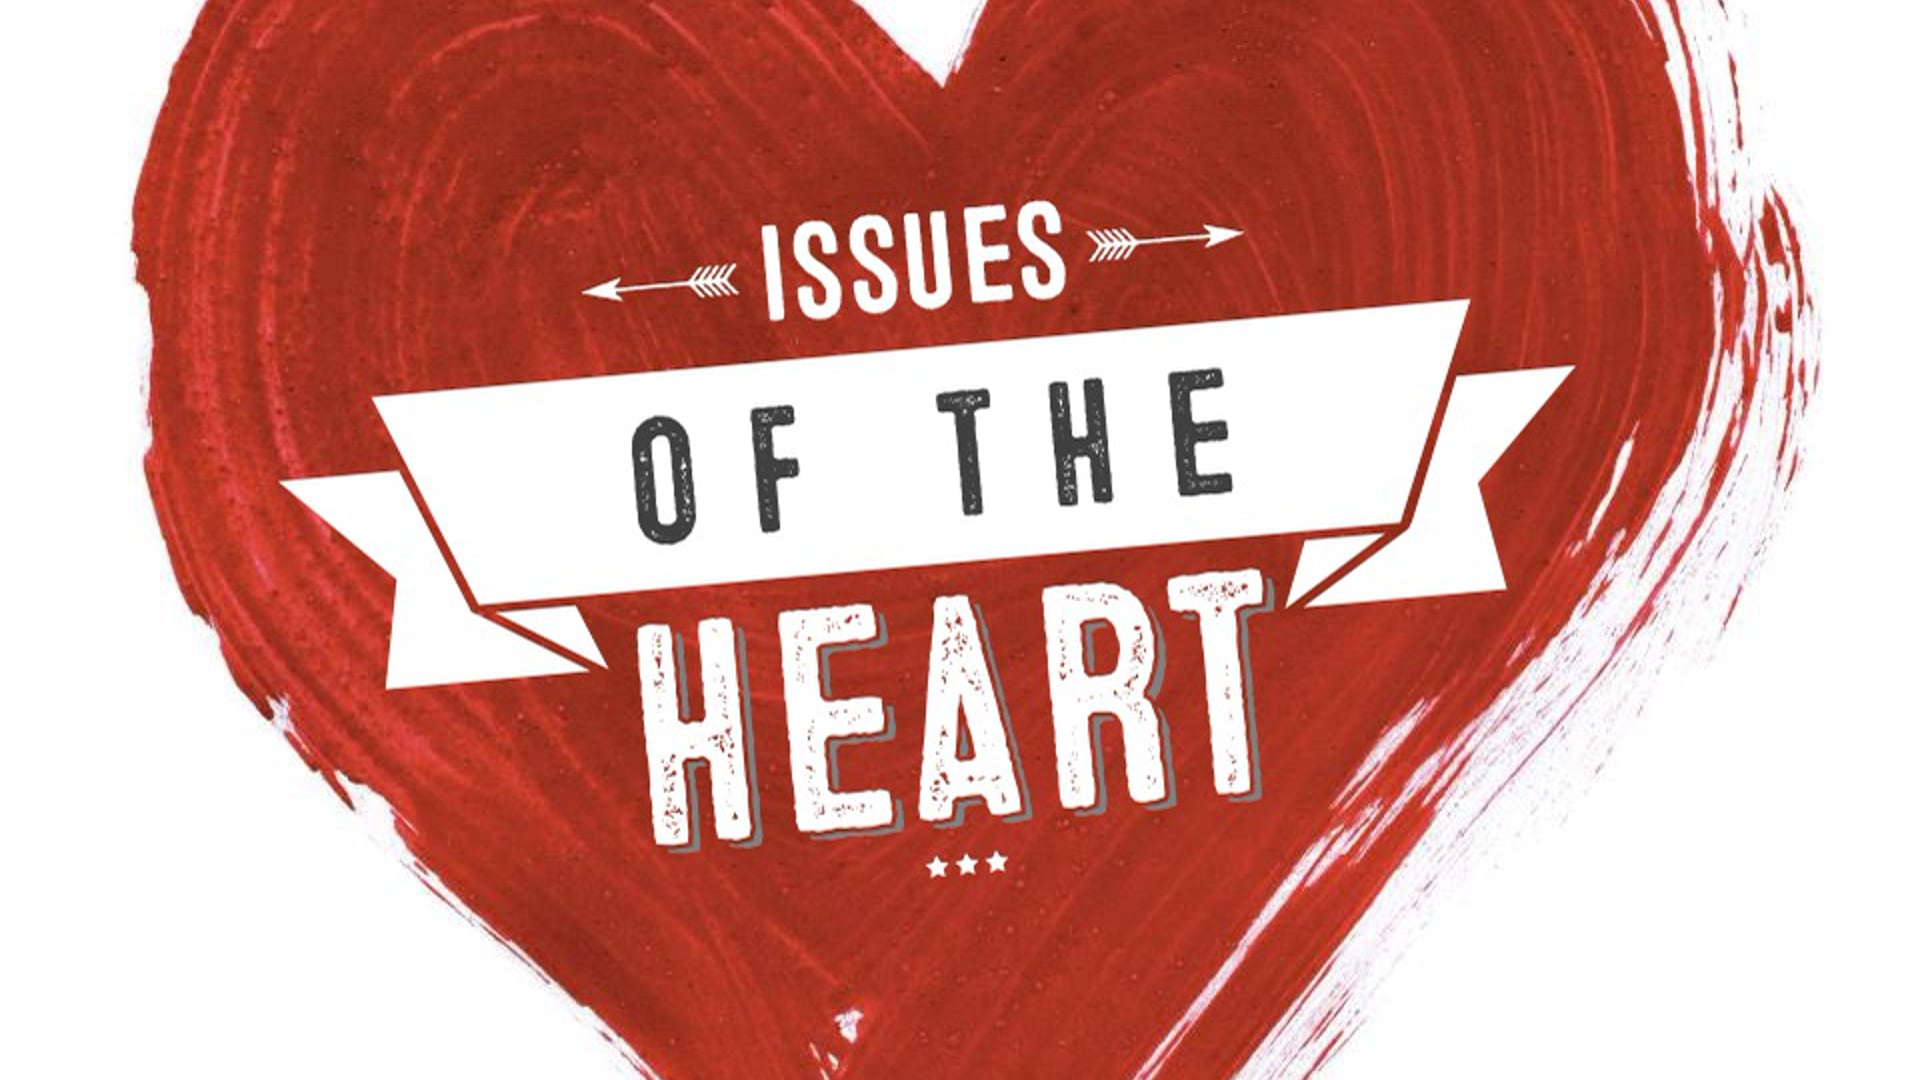 Issues of The Heart - Part 2